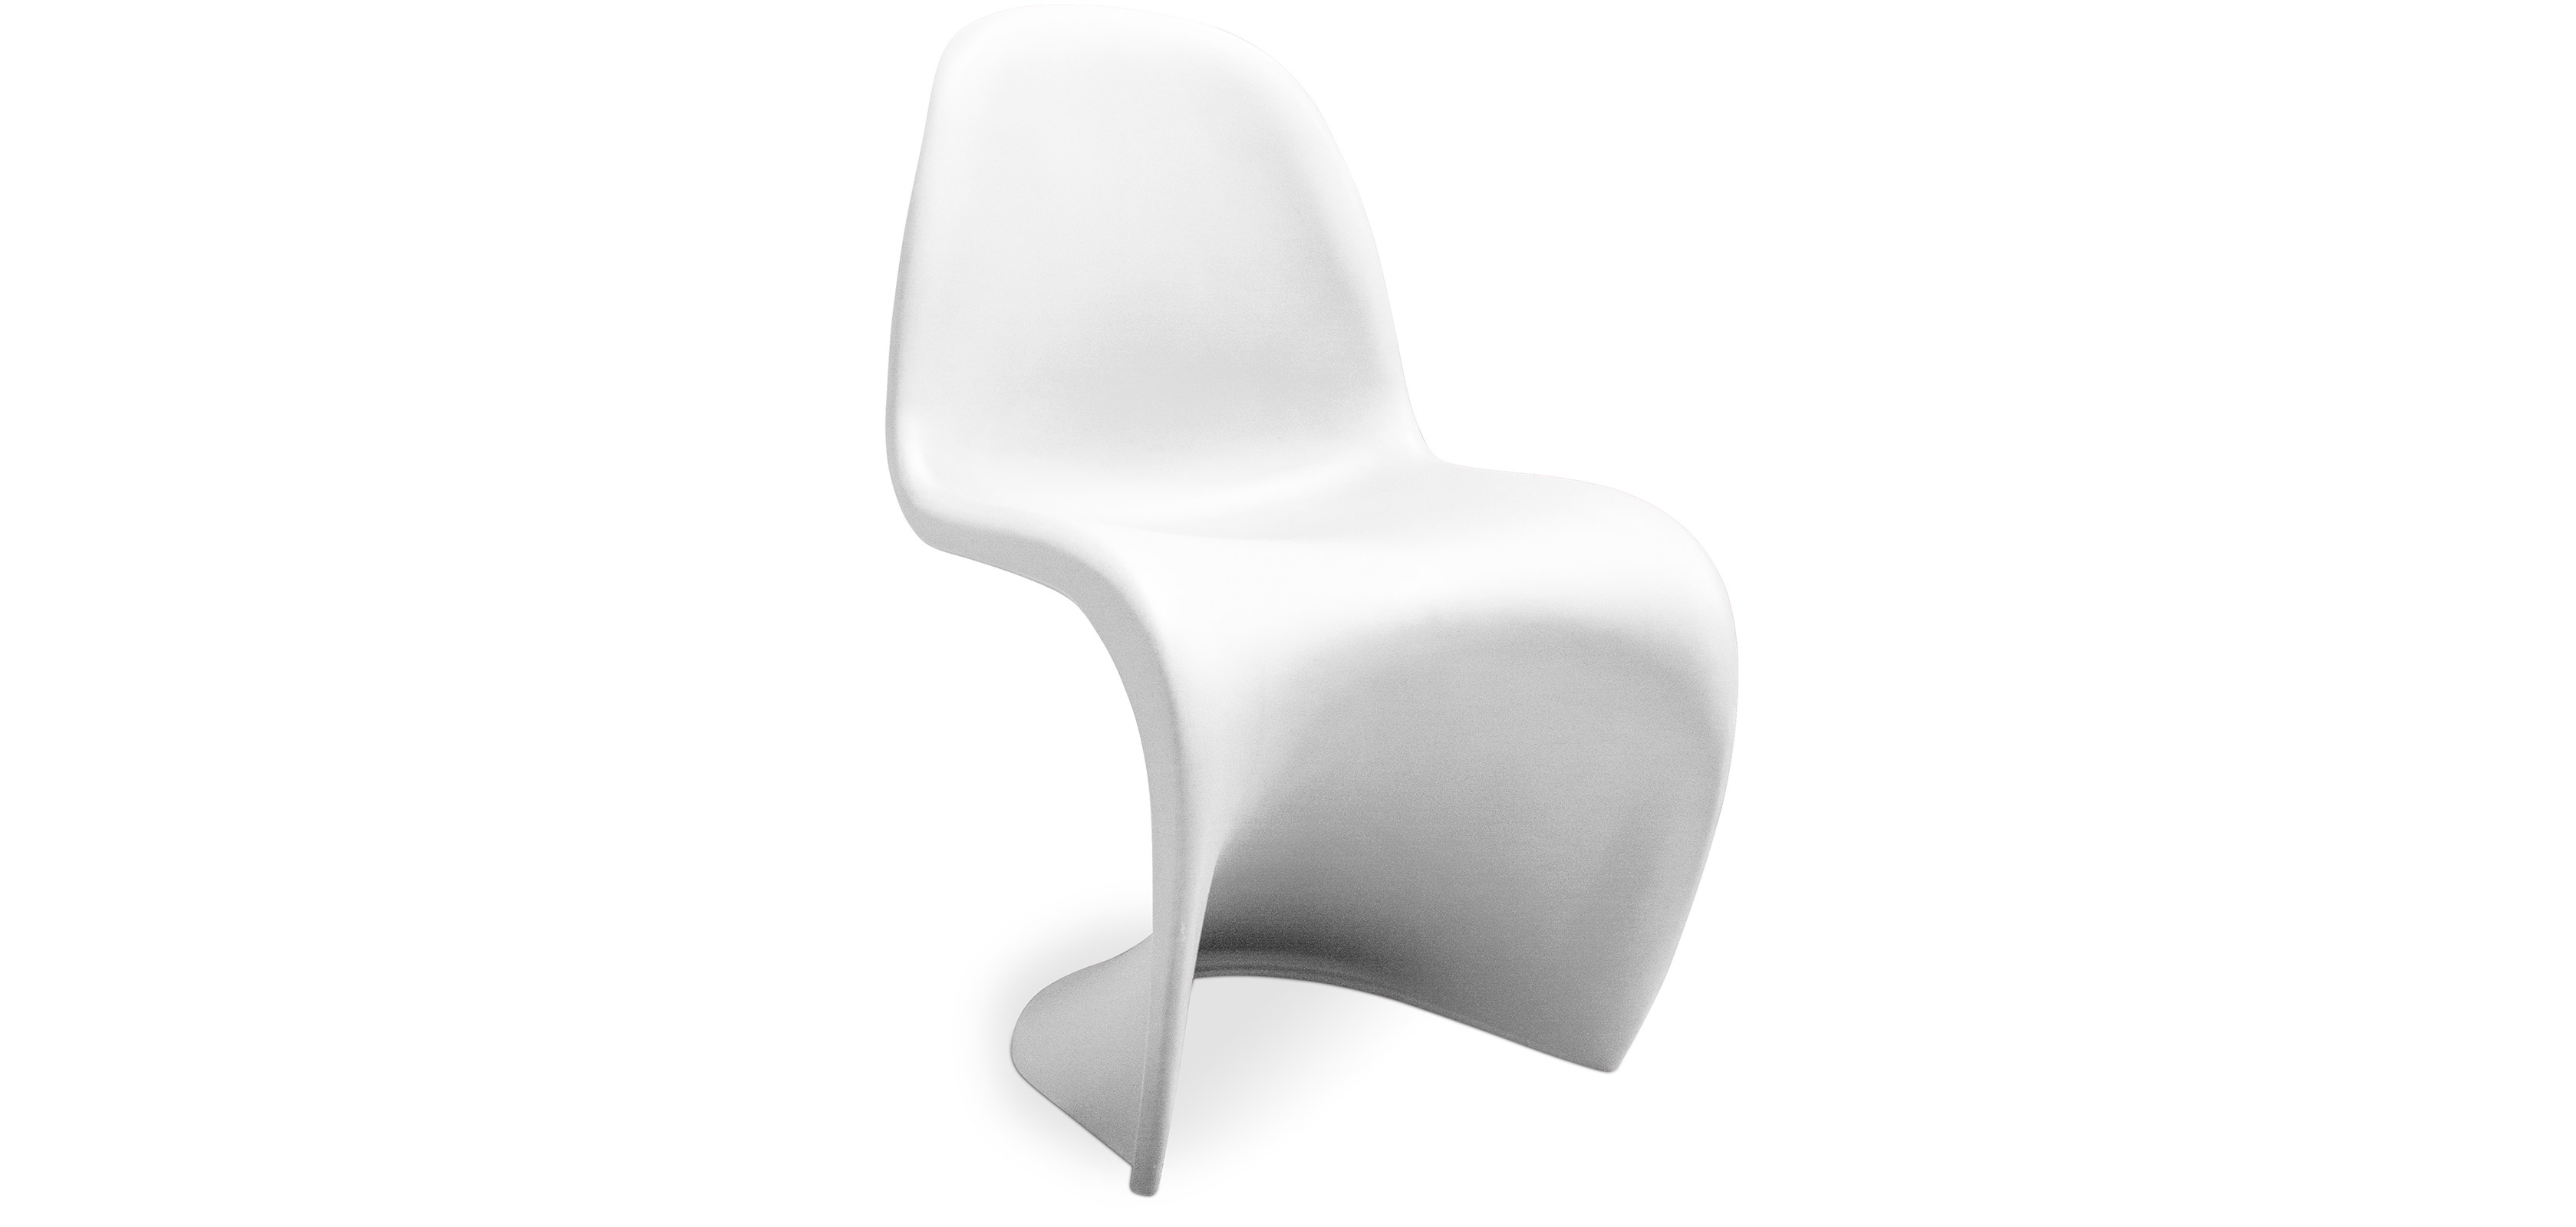 Buy Phanton Chair White 58587 - in the UK